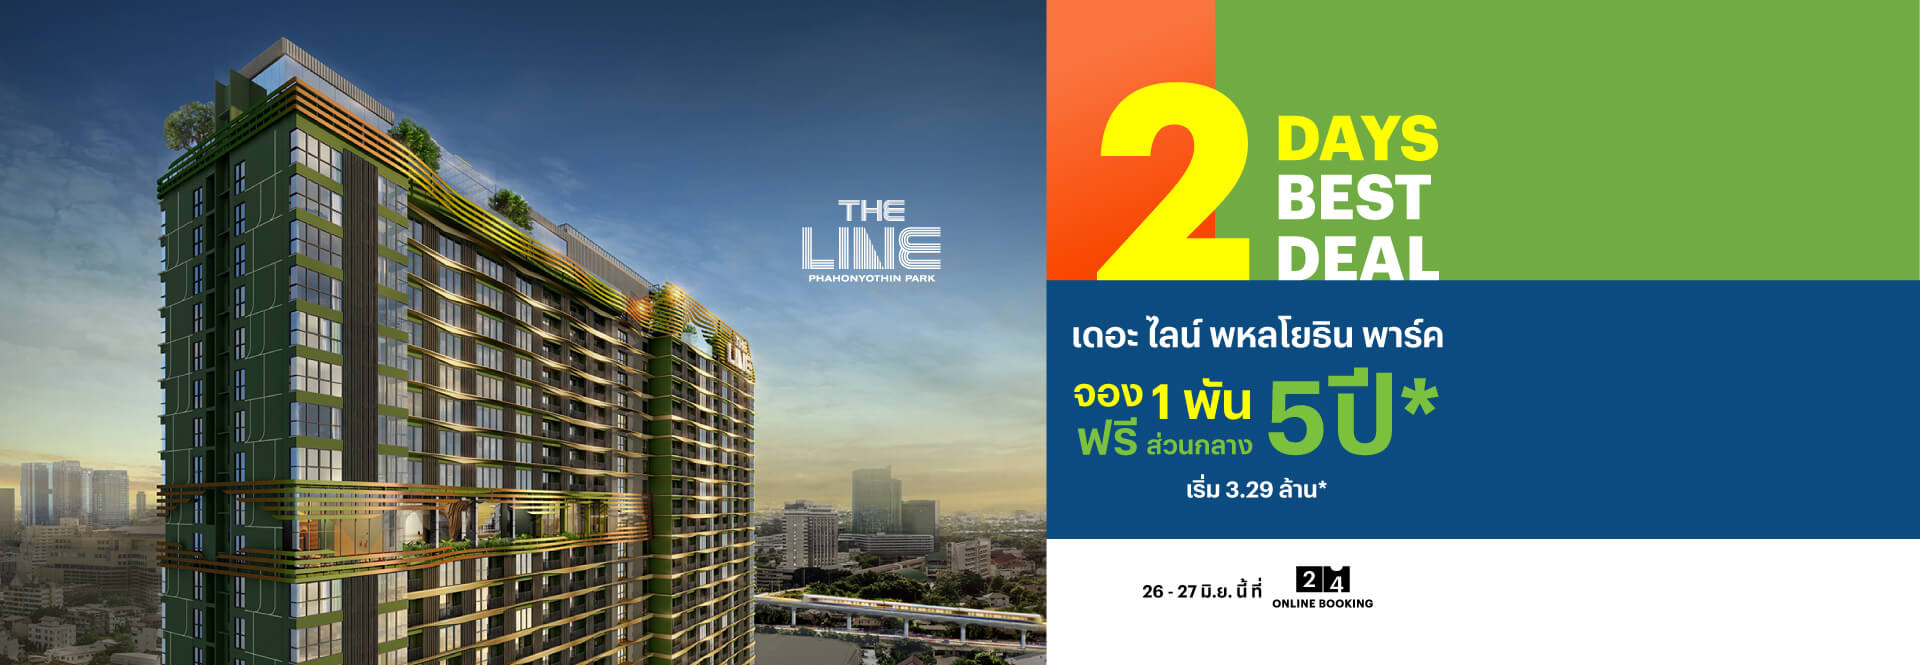 THE LINE PHP Online Booking Campaign